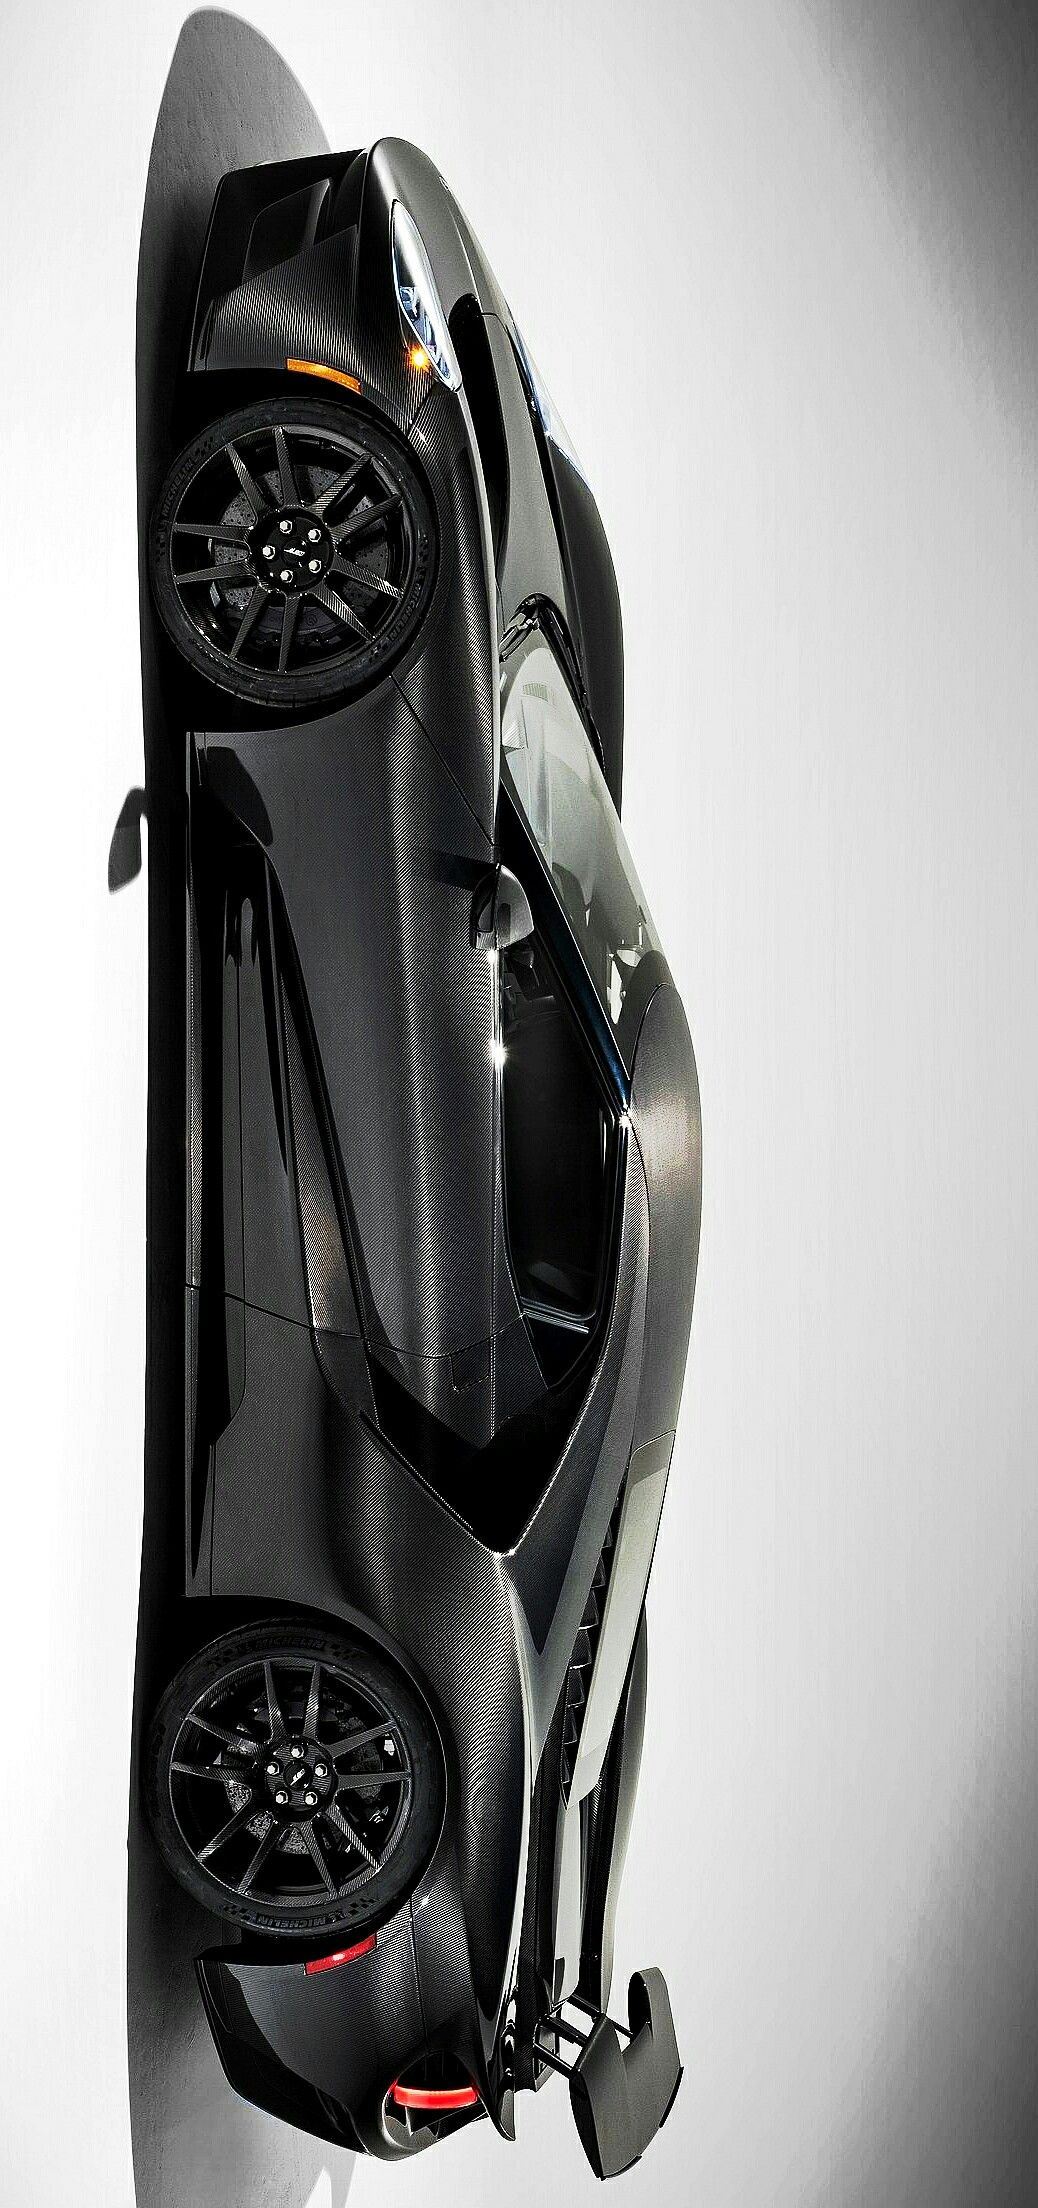 2020 Ford Gt Liquid Carbon Edition Image Enhancements By Keely